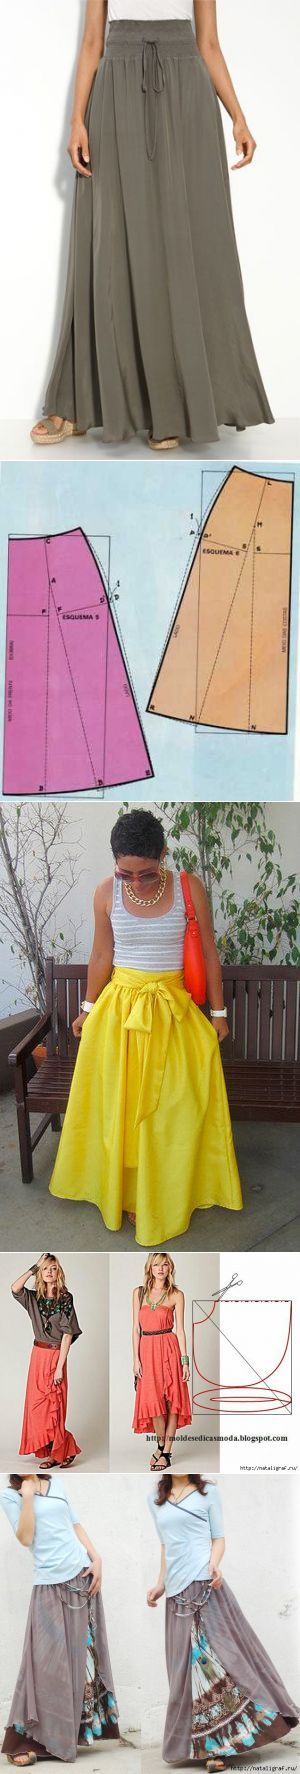 Sewing pattern/ skirts